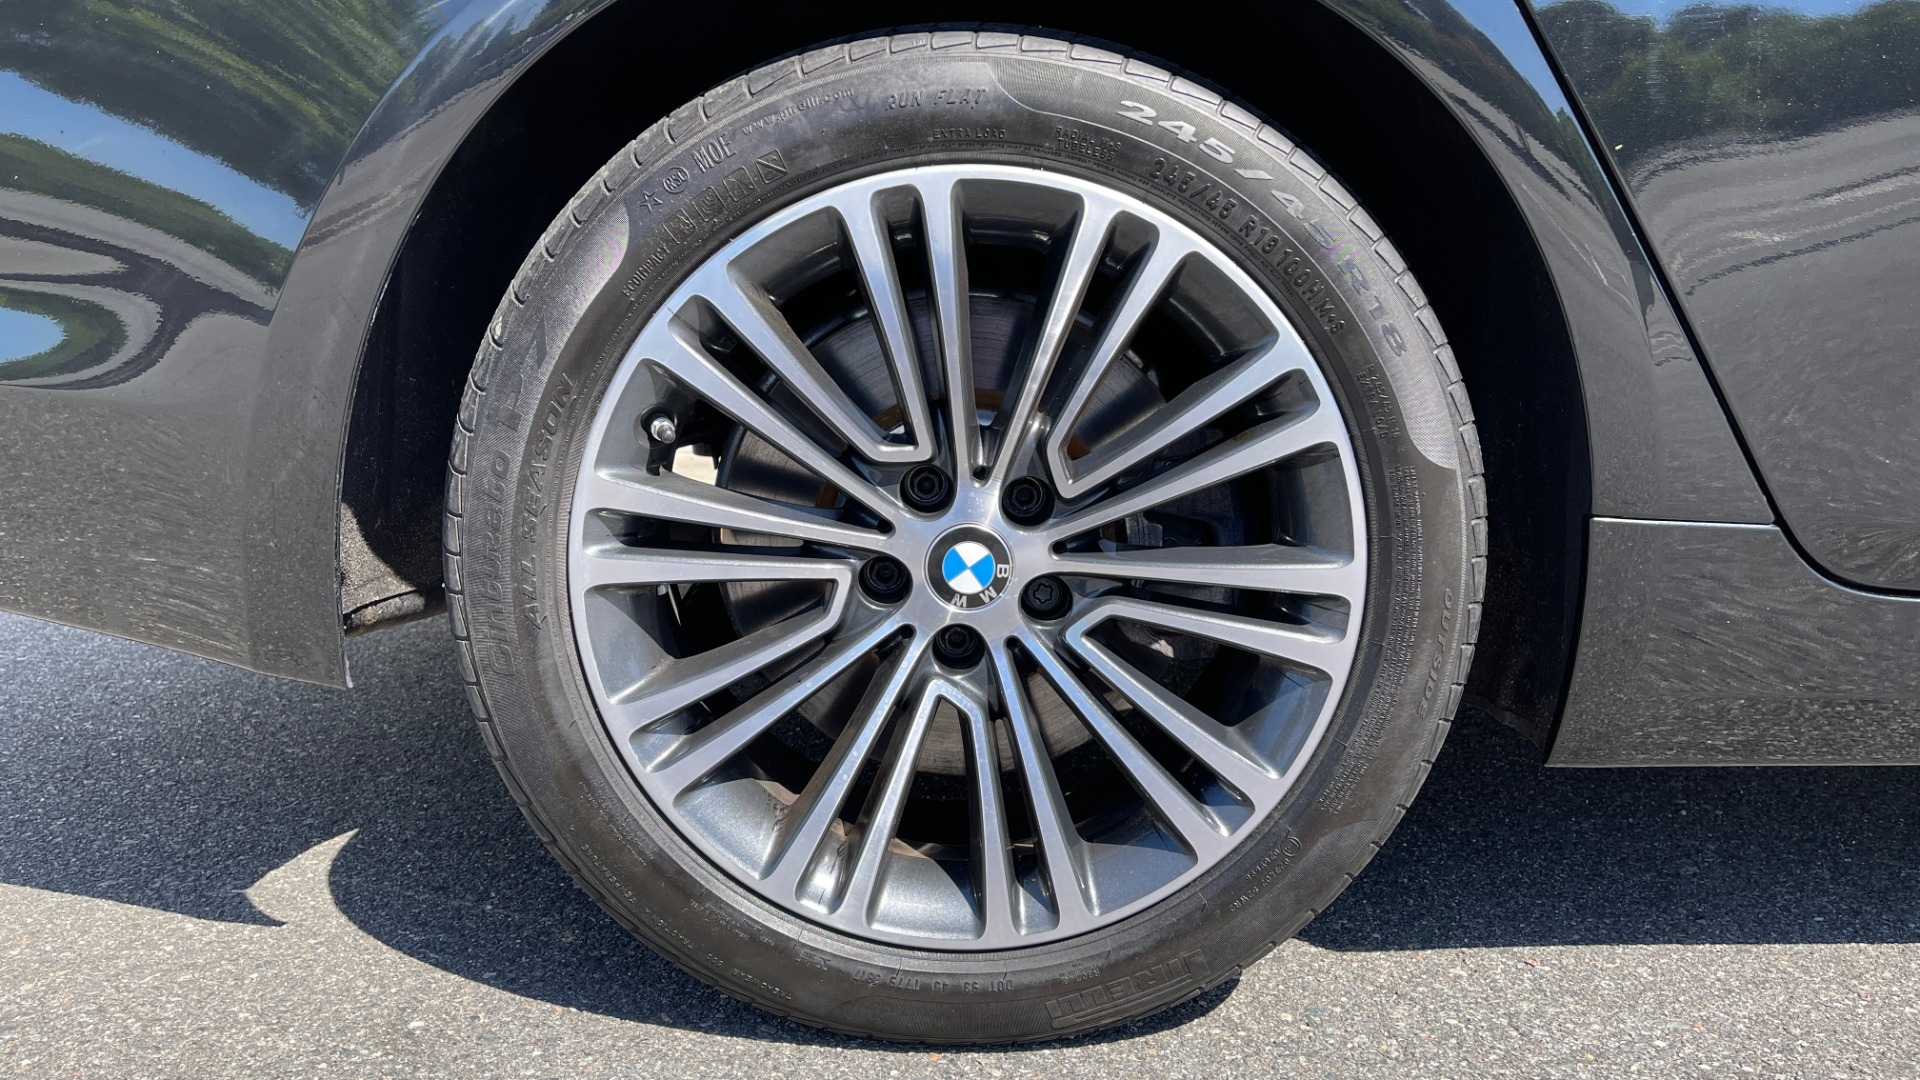 Used 2018 BMW 5 SERIES 540I XDRIVE PREMIUM / NAV / PARK ASST / WIRELESS CHARGING H/K SND for sale $38,395 at Formula Imports in Charlotte NC 28227 86